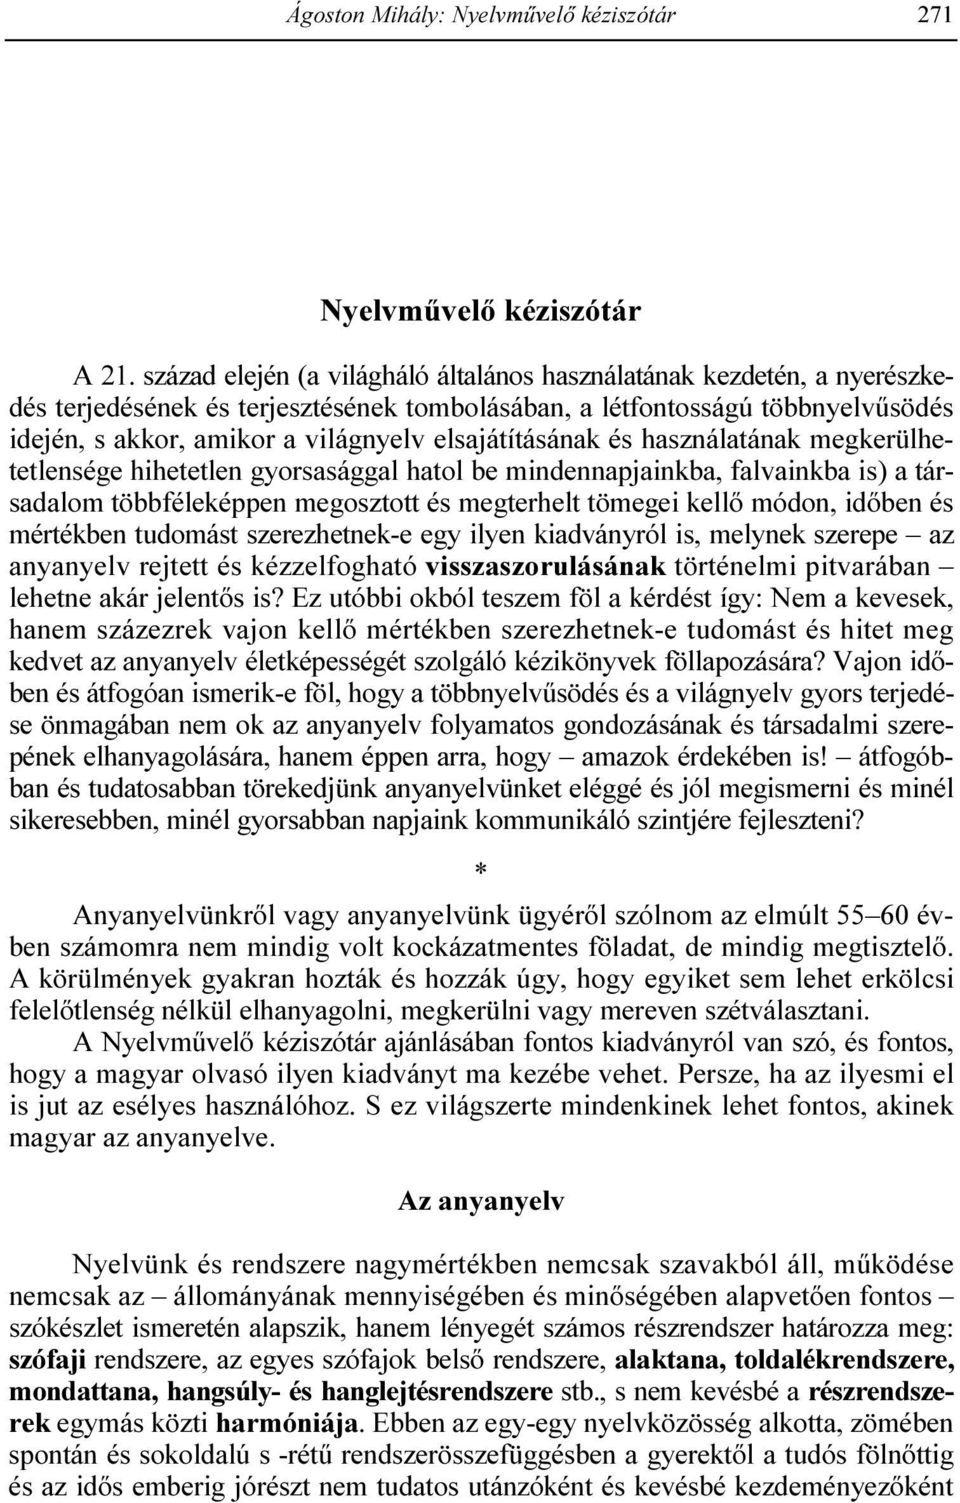 In the analysis we have used the material of the Hungarian National Text Corpus, the relevant dictionaries and encyclopaedias, as well as proverbs, phraseologisms, religious texts and questionnaire